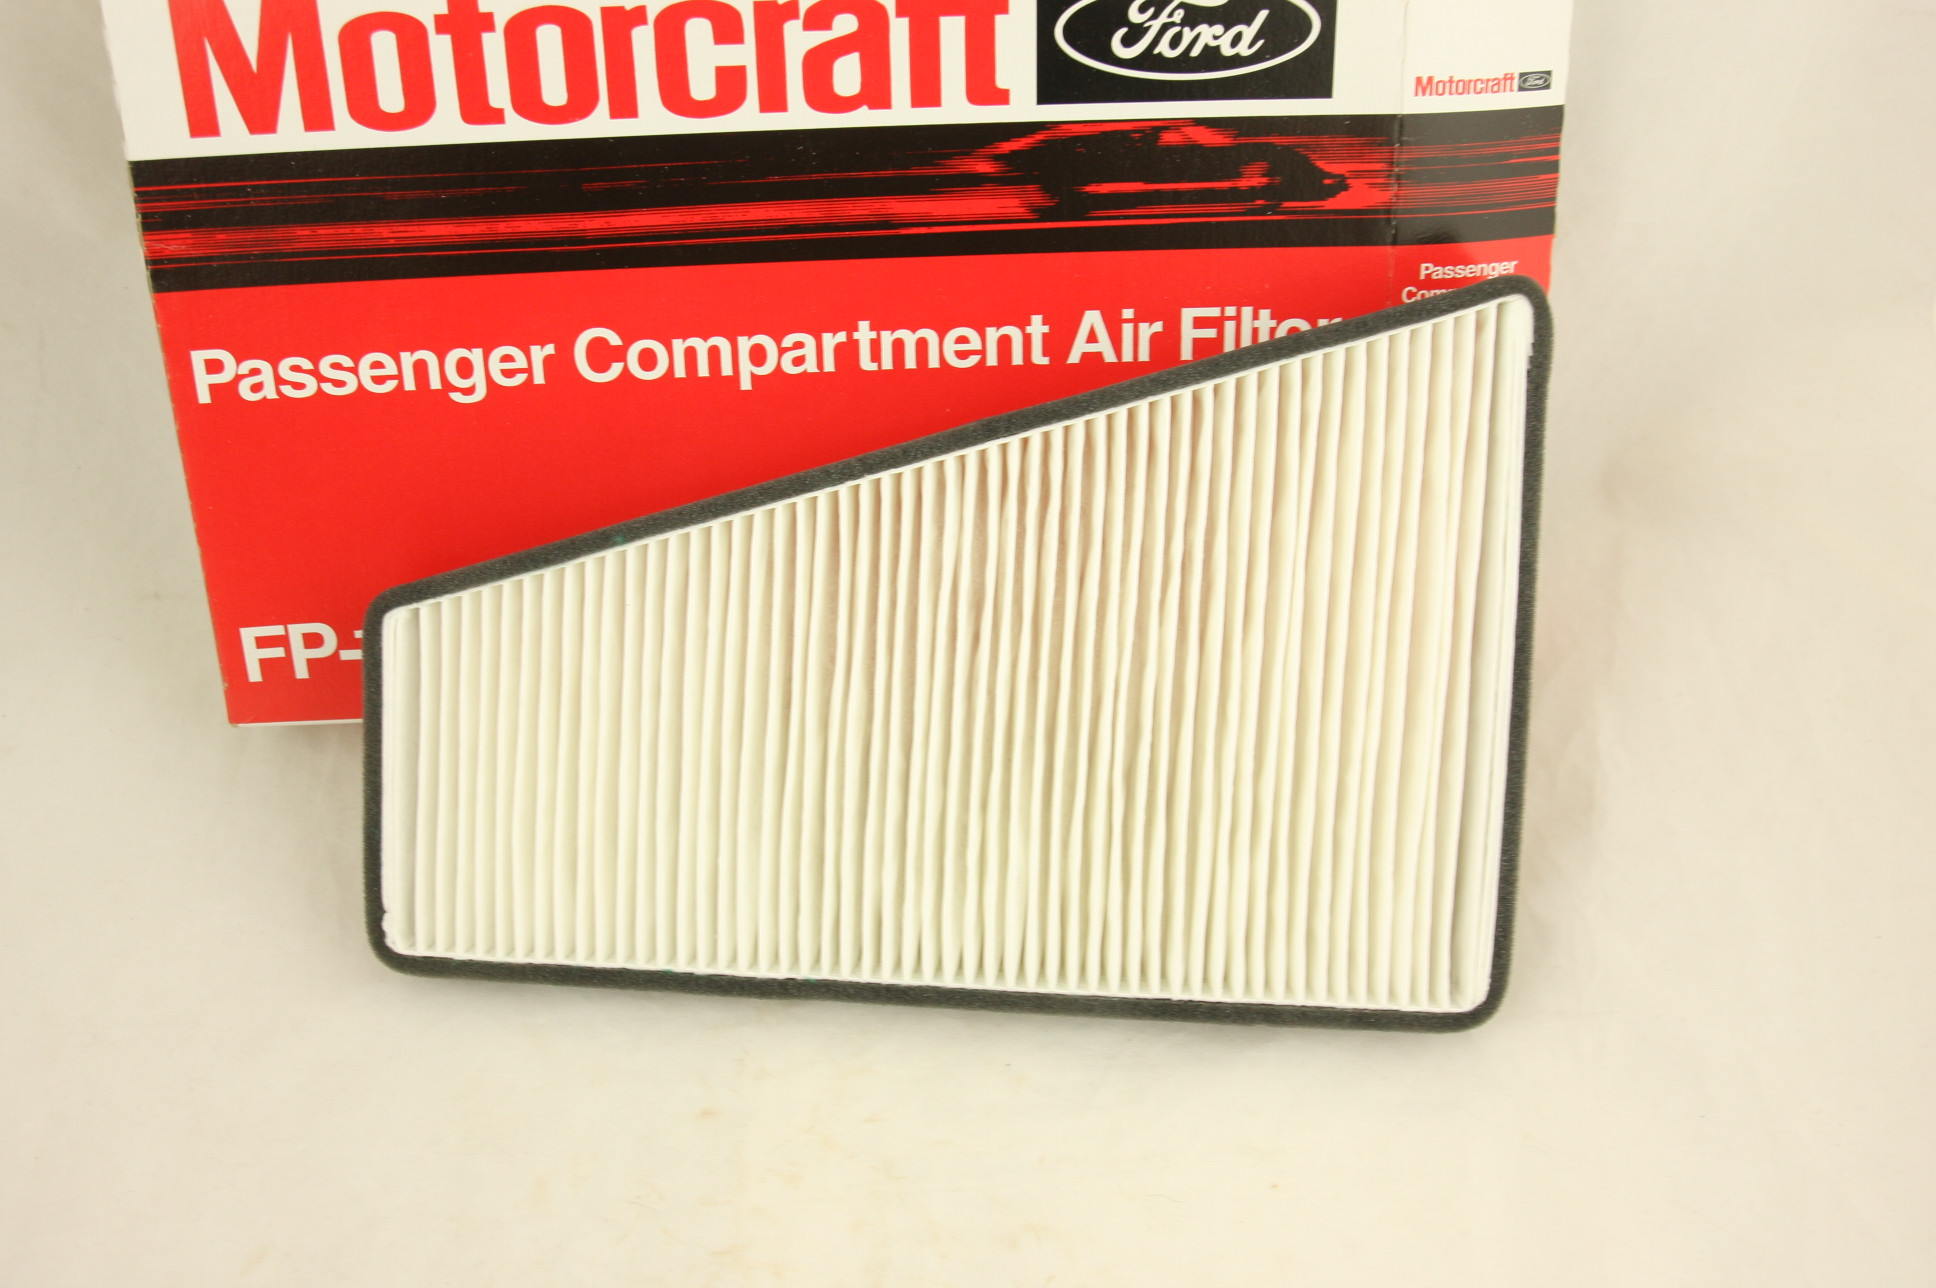 *** New OEM Motorcraft FP14 Ford F7DZ19N619AB Pollen Cabin Filter Free Shipping - image 1